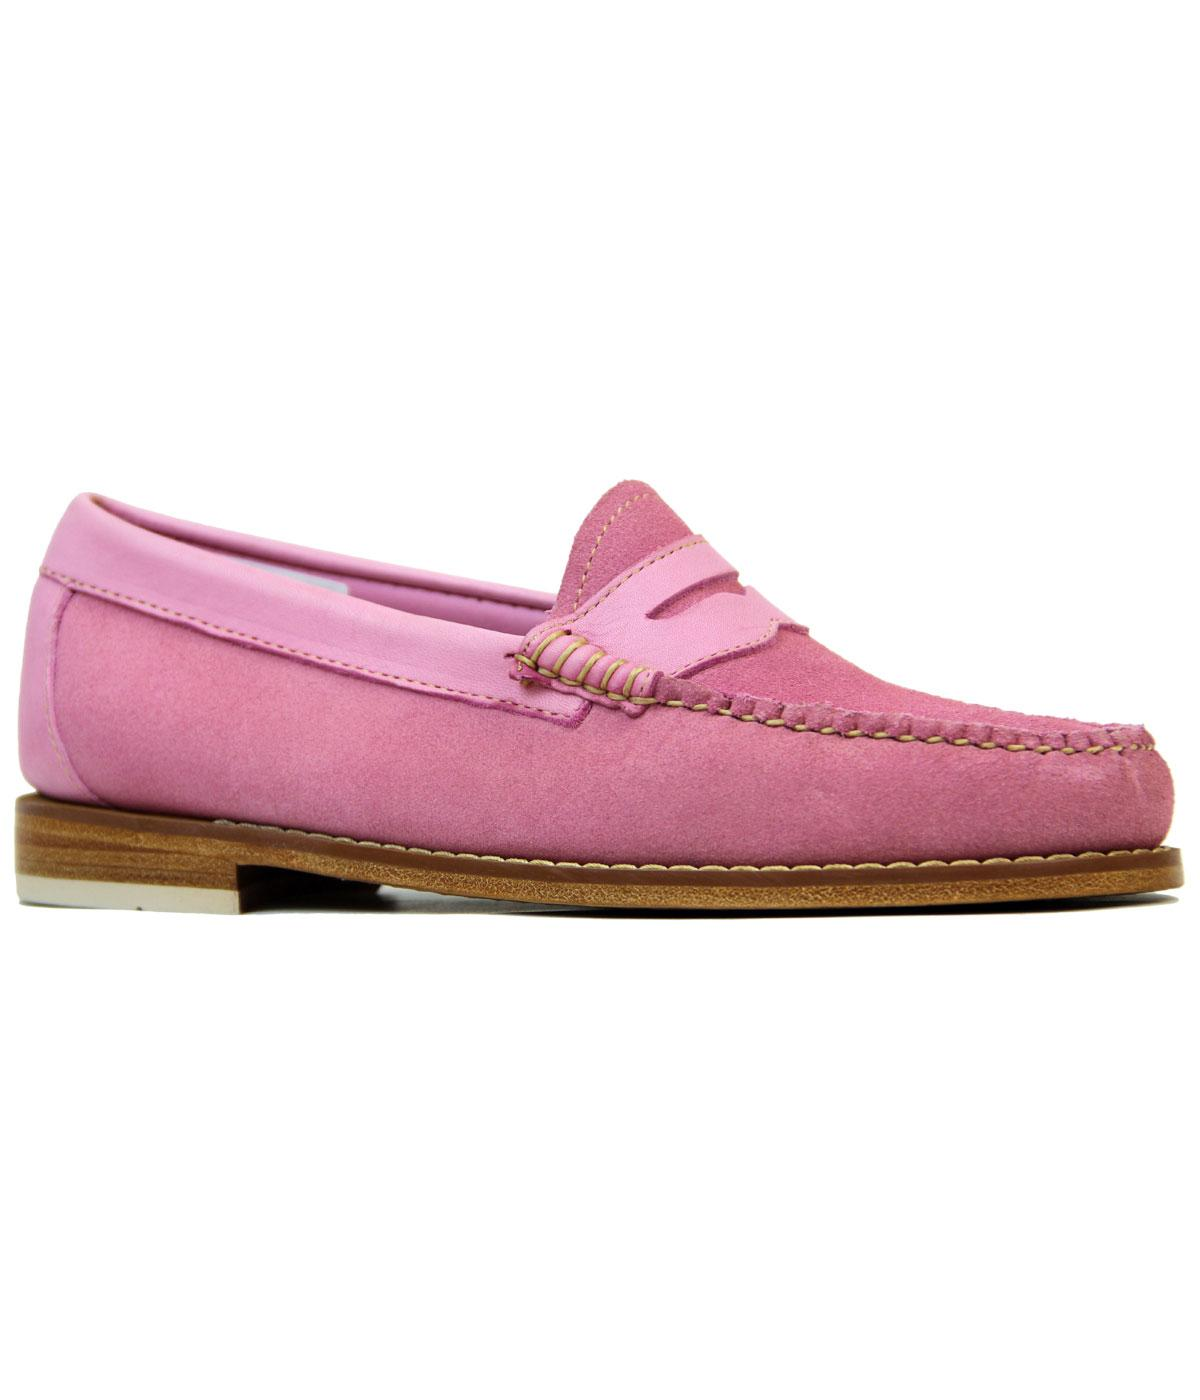 BASS WEEJUNS Womens Mod Velour Suede Penny Loafers